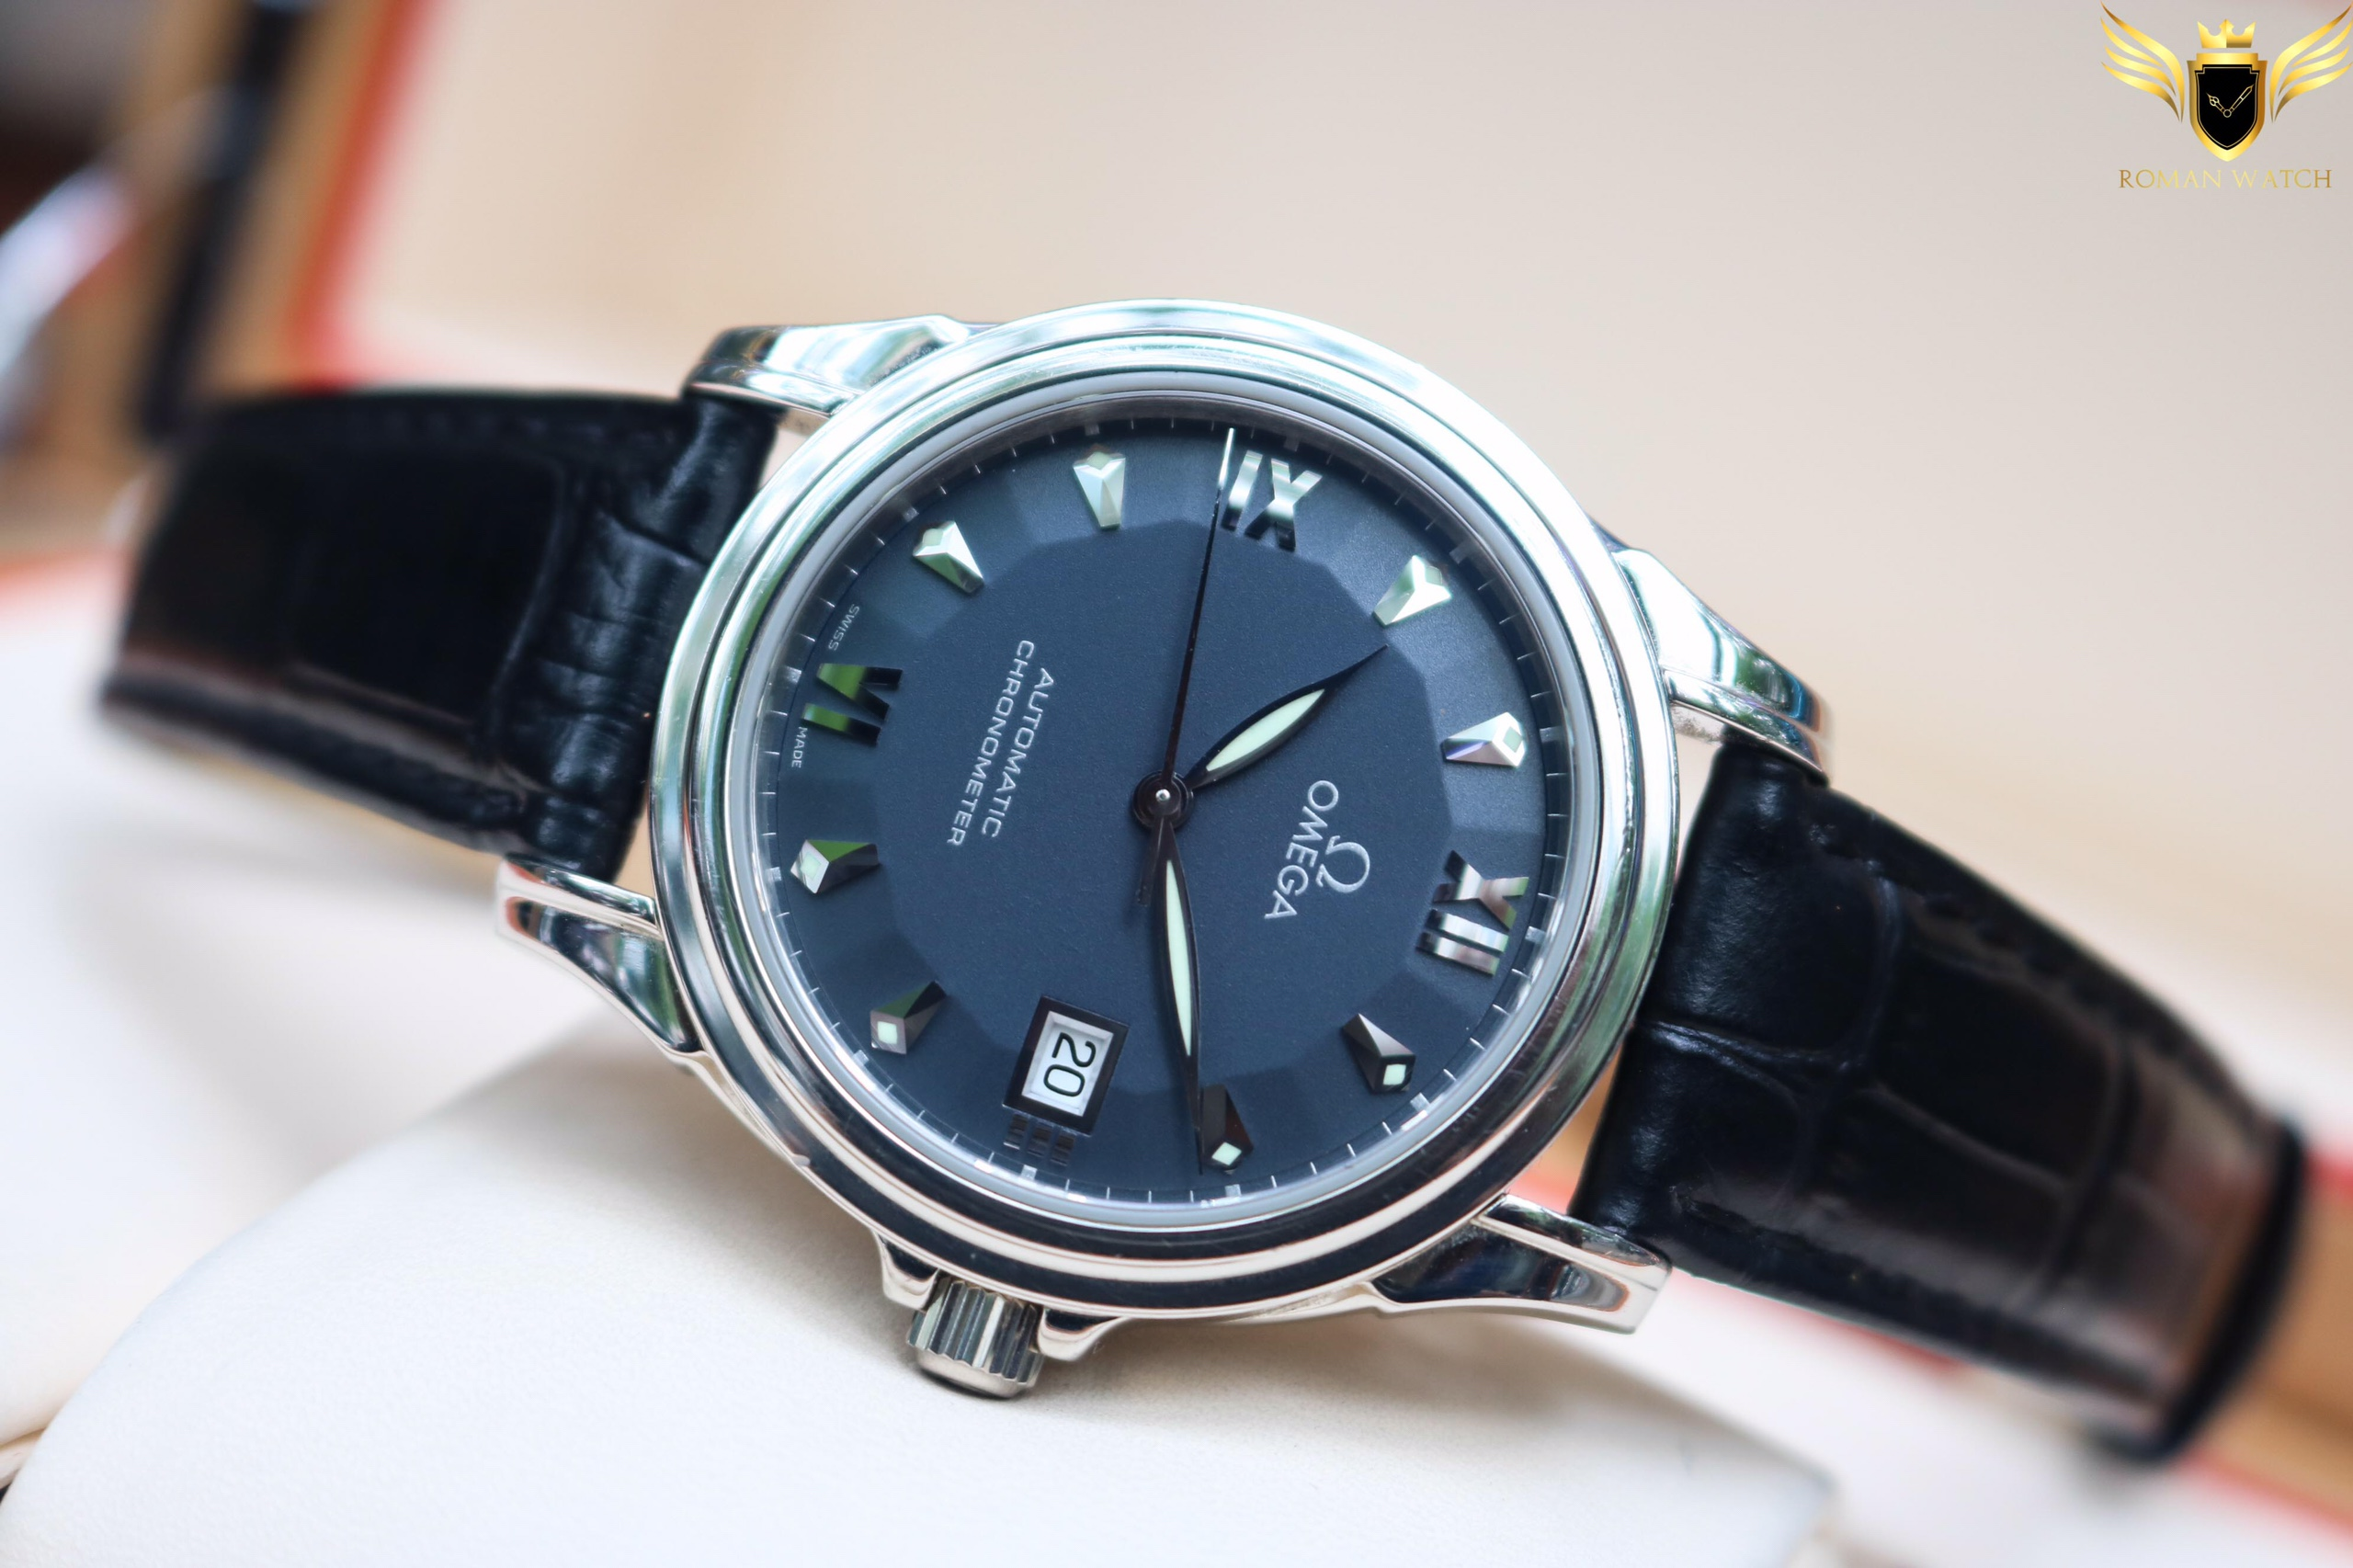 OMEGA DEVILLE PLATINUM LIMITTED 499PC- THÁCH THỨC THỜI GIAN